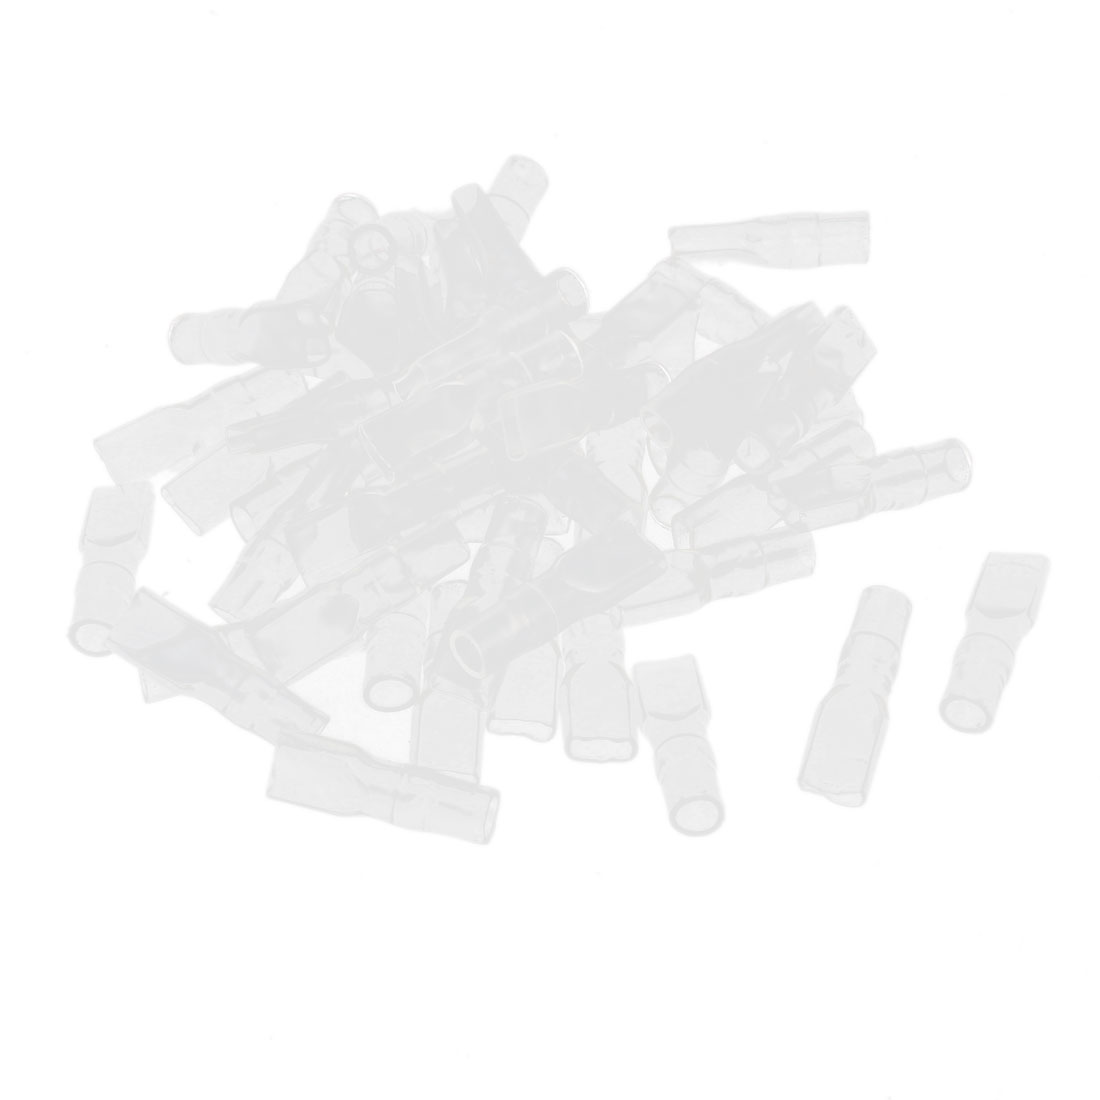 50 Pcs 4.8mm Clear PVC Double Female Insulated Ring Terminal Caps Boots Covers Sleeves